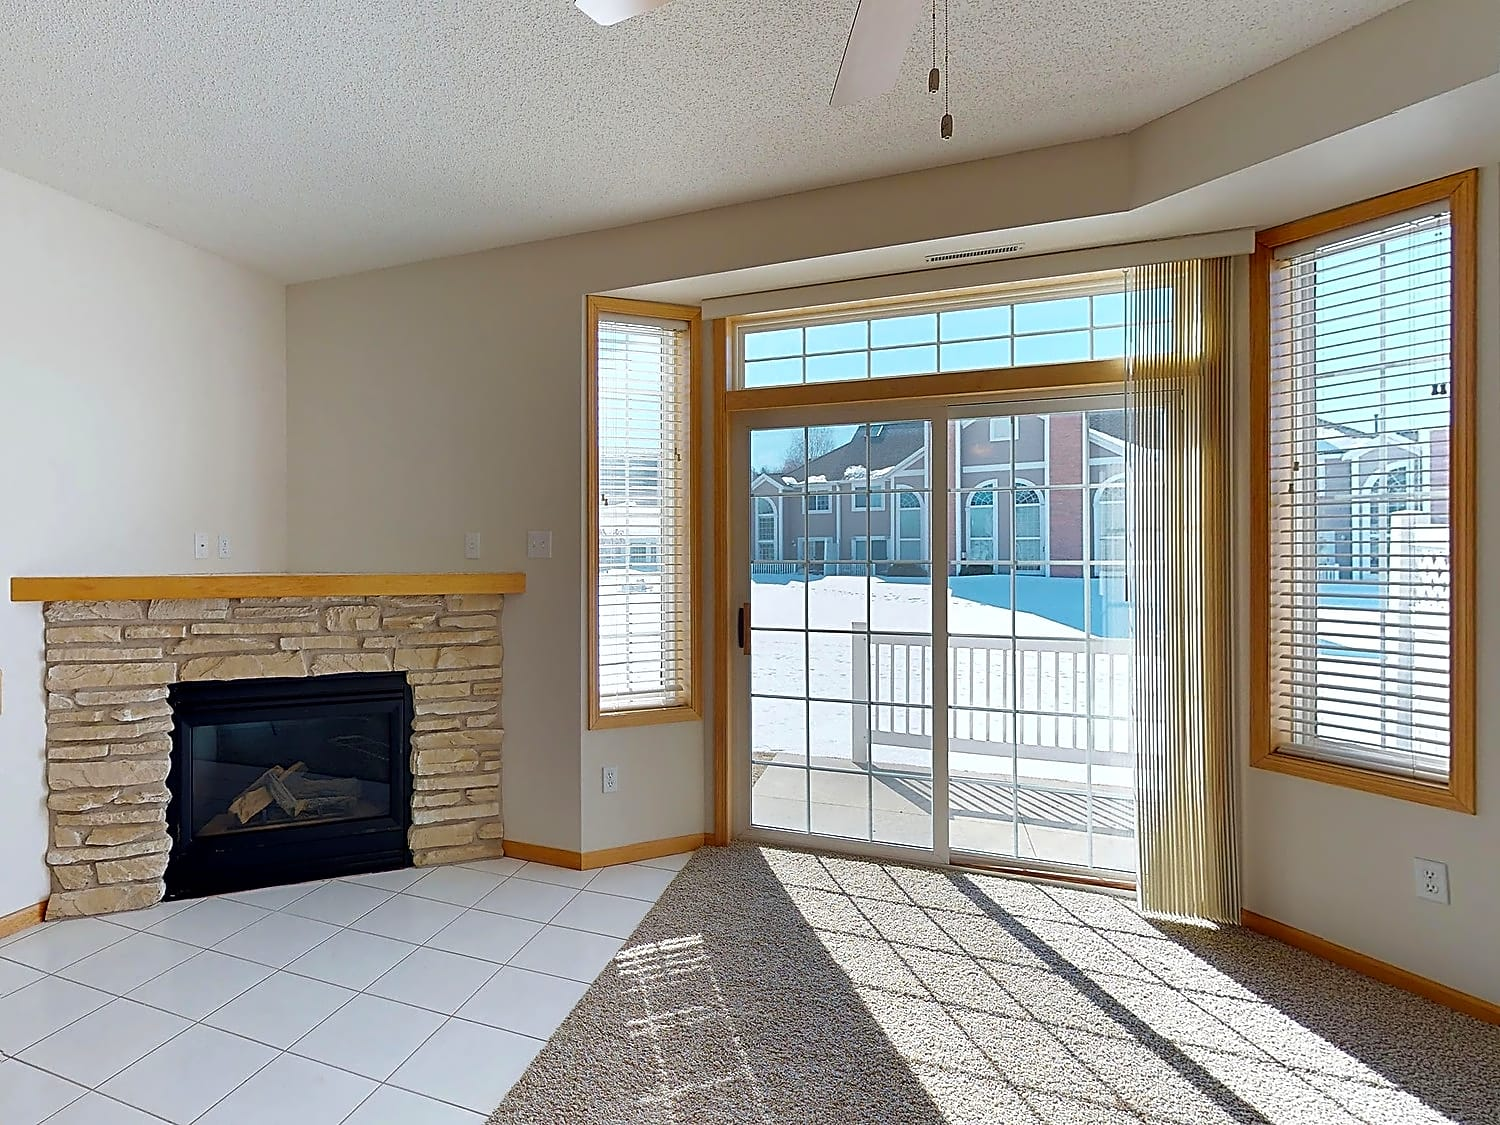 3 bedroom apartments near rochester mn fully furnished apartments next to mayo clinic st mary s for 1 bedroom apartments in rochester mn